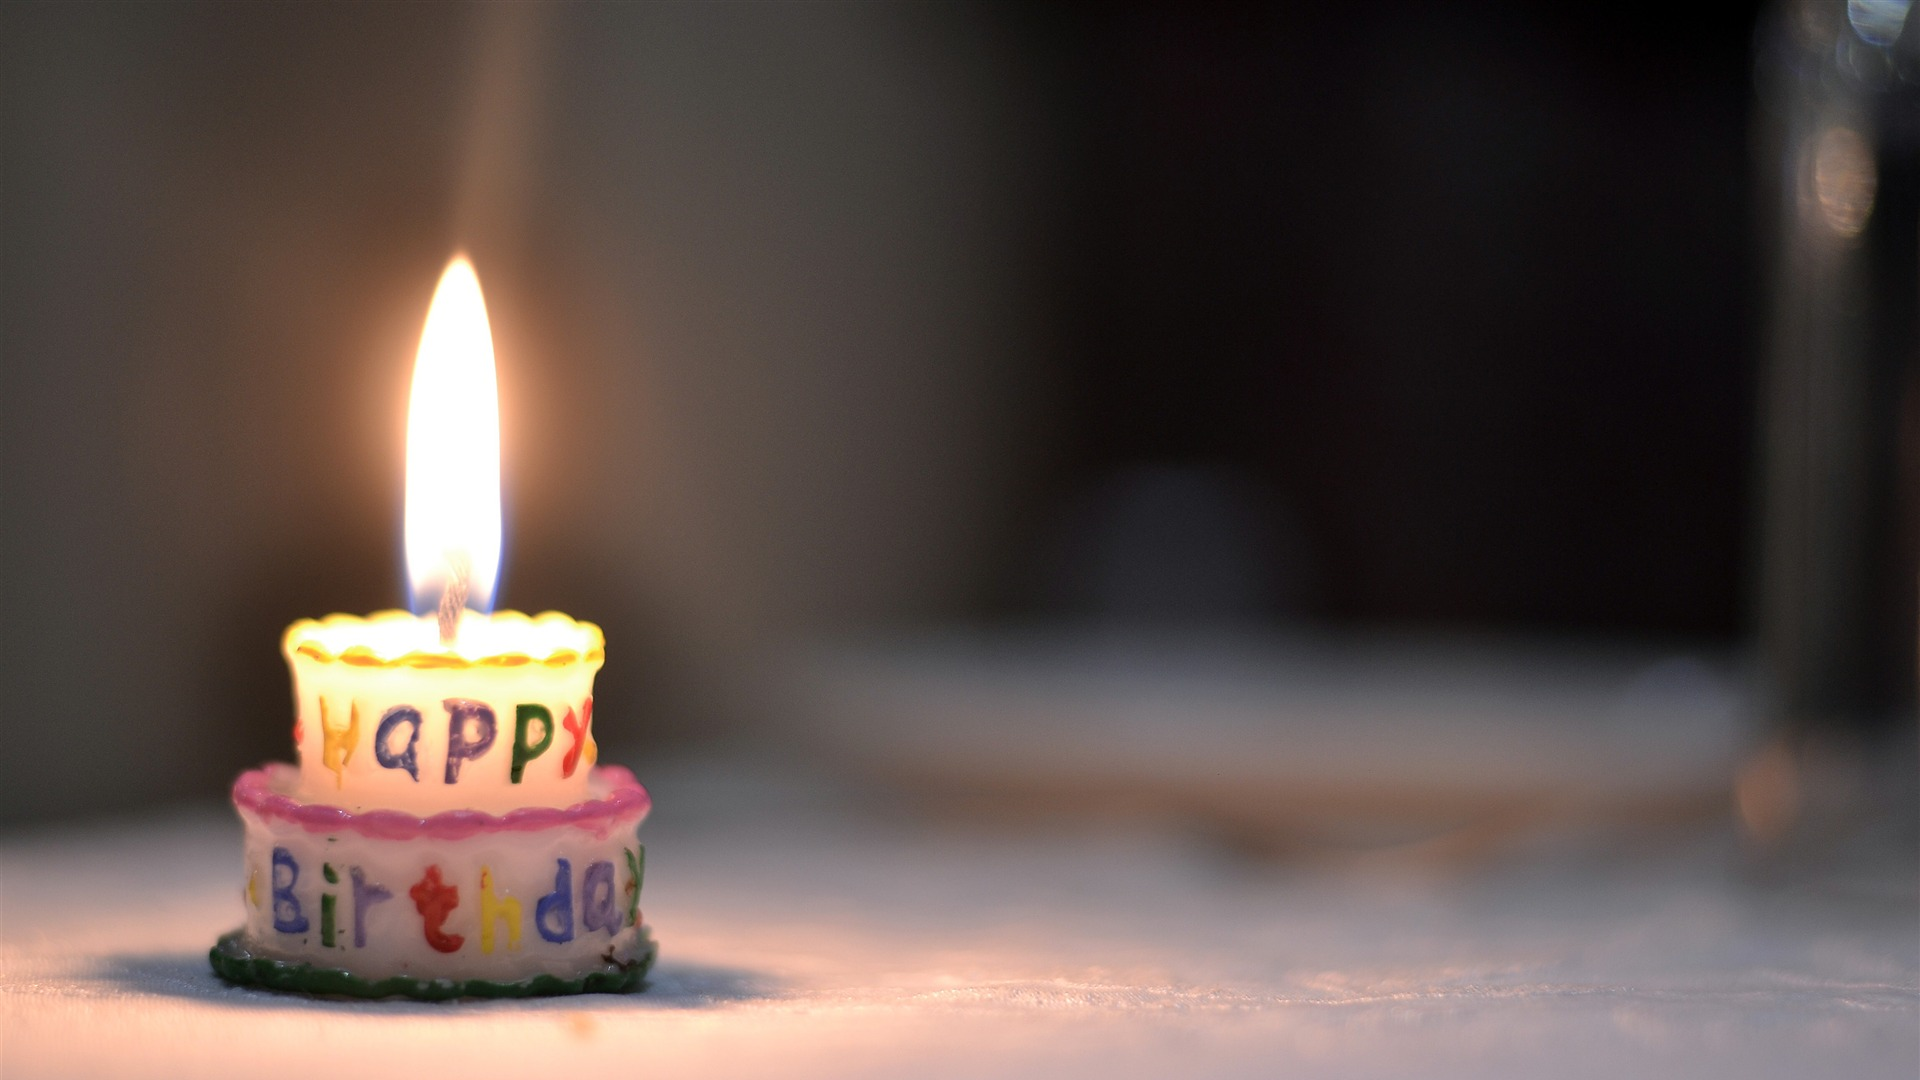 Happy Birthday Cake Candle Flame Preview 10wallpaper Com